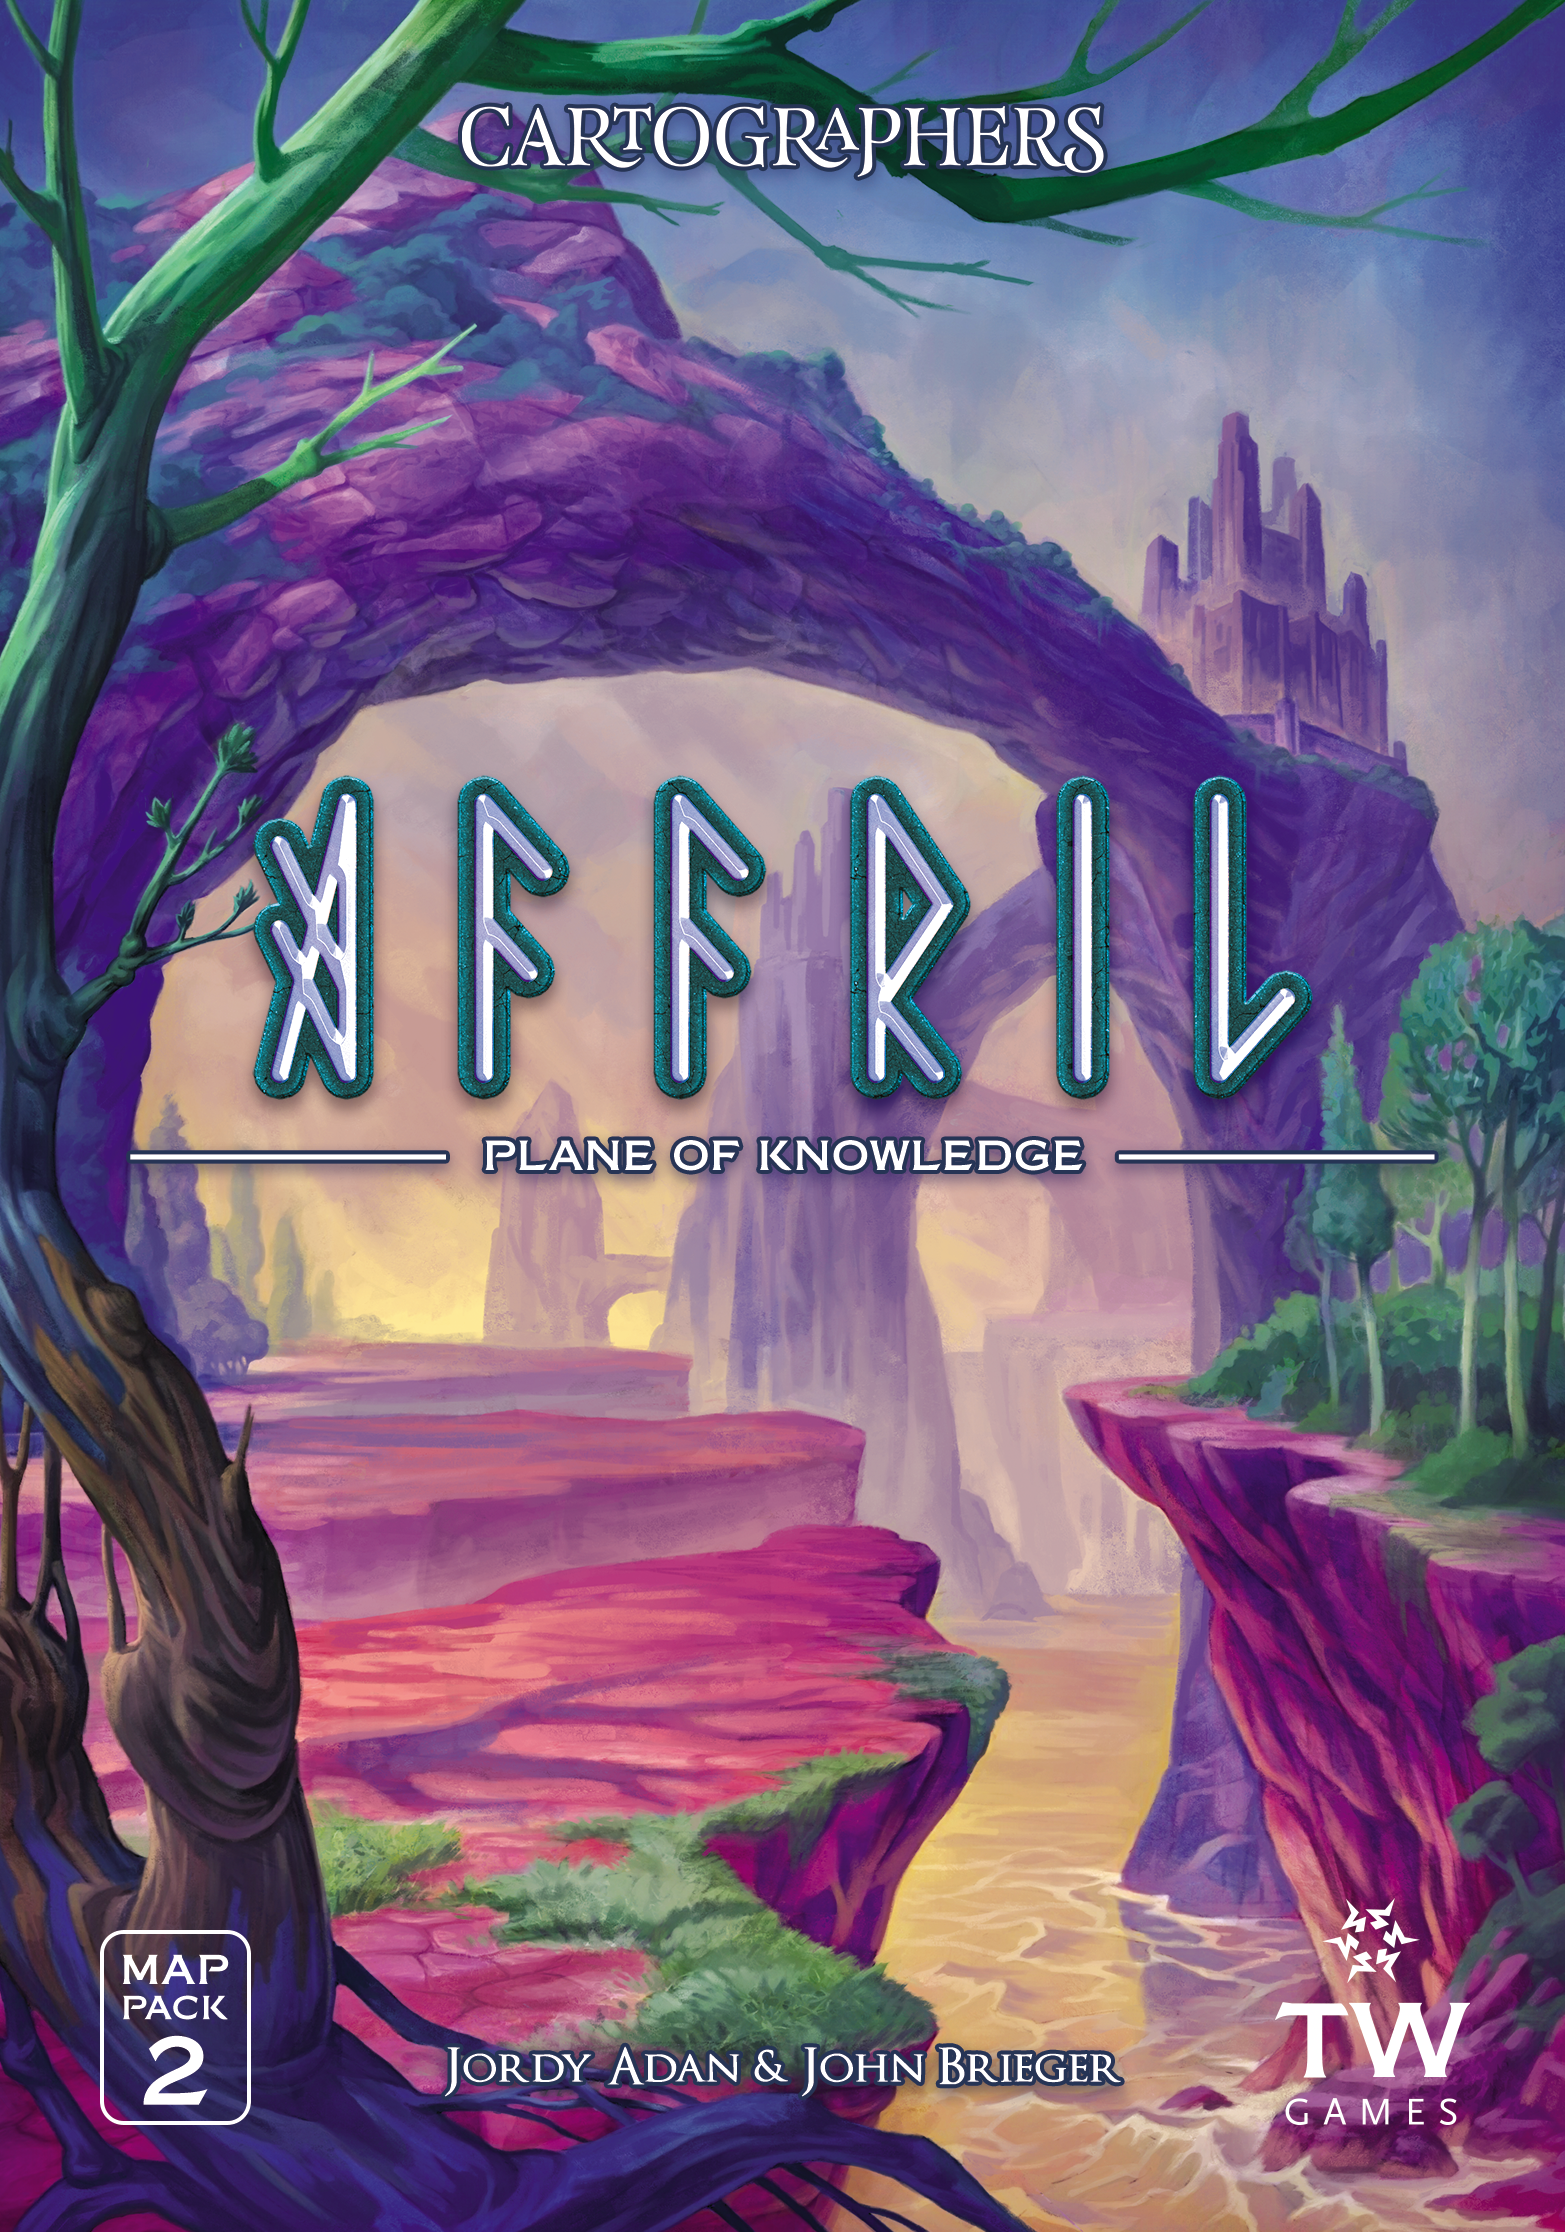 Cartographers Map Pack 2: Affril – Plane of Knowledge